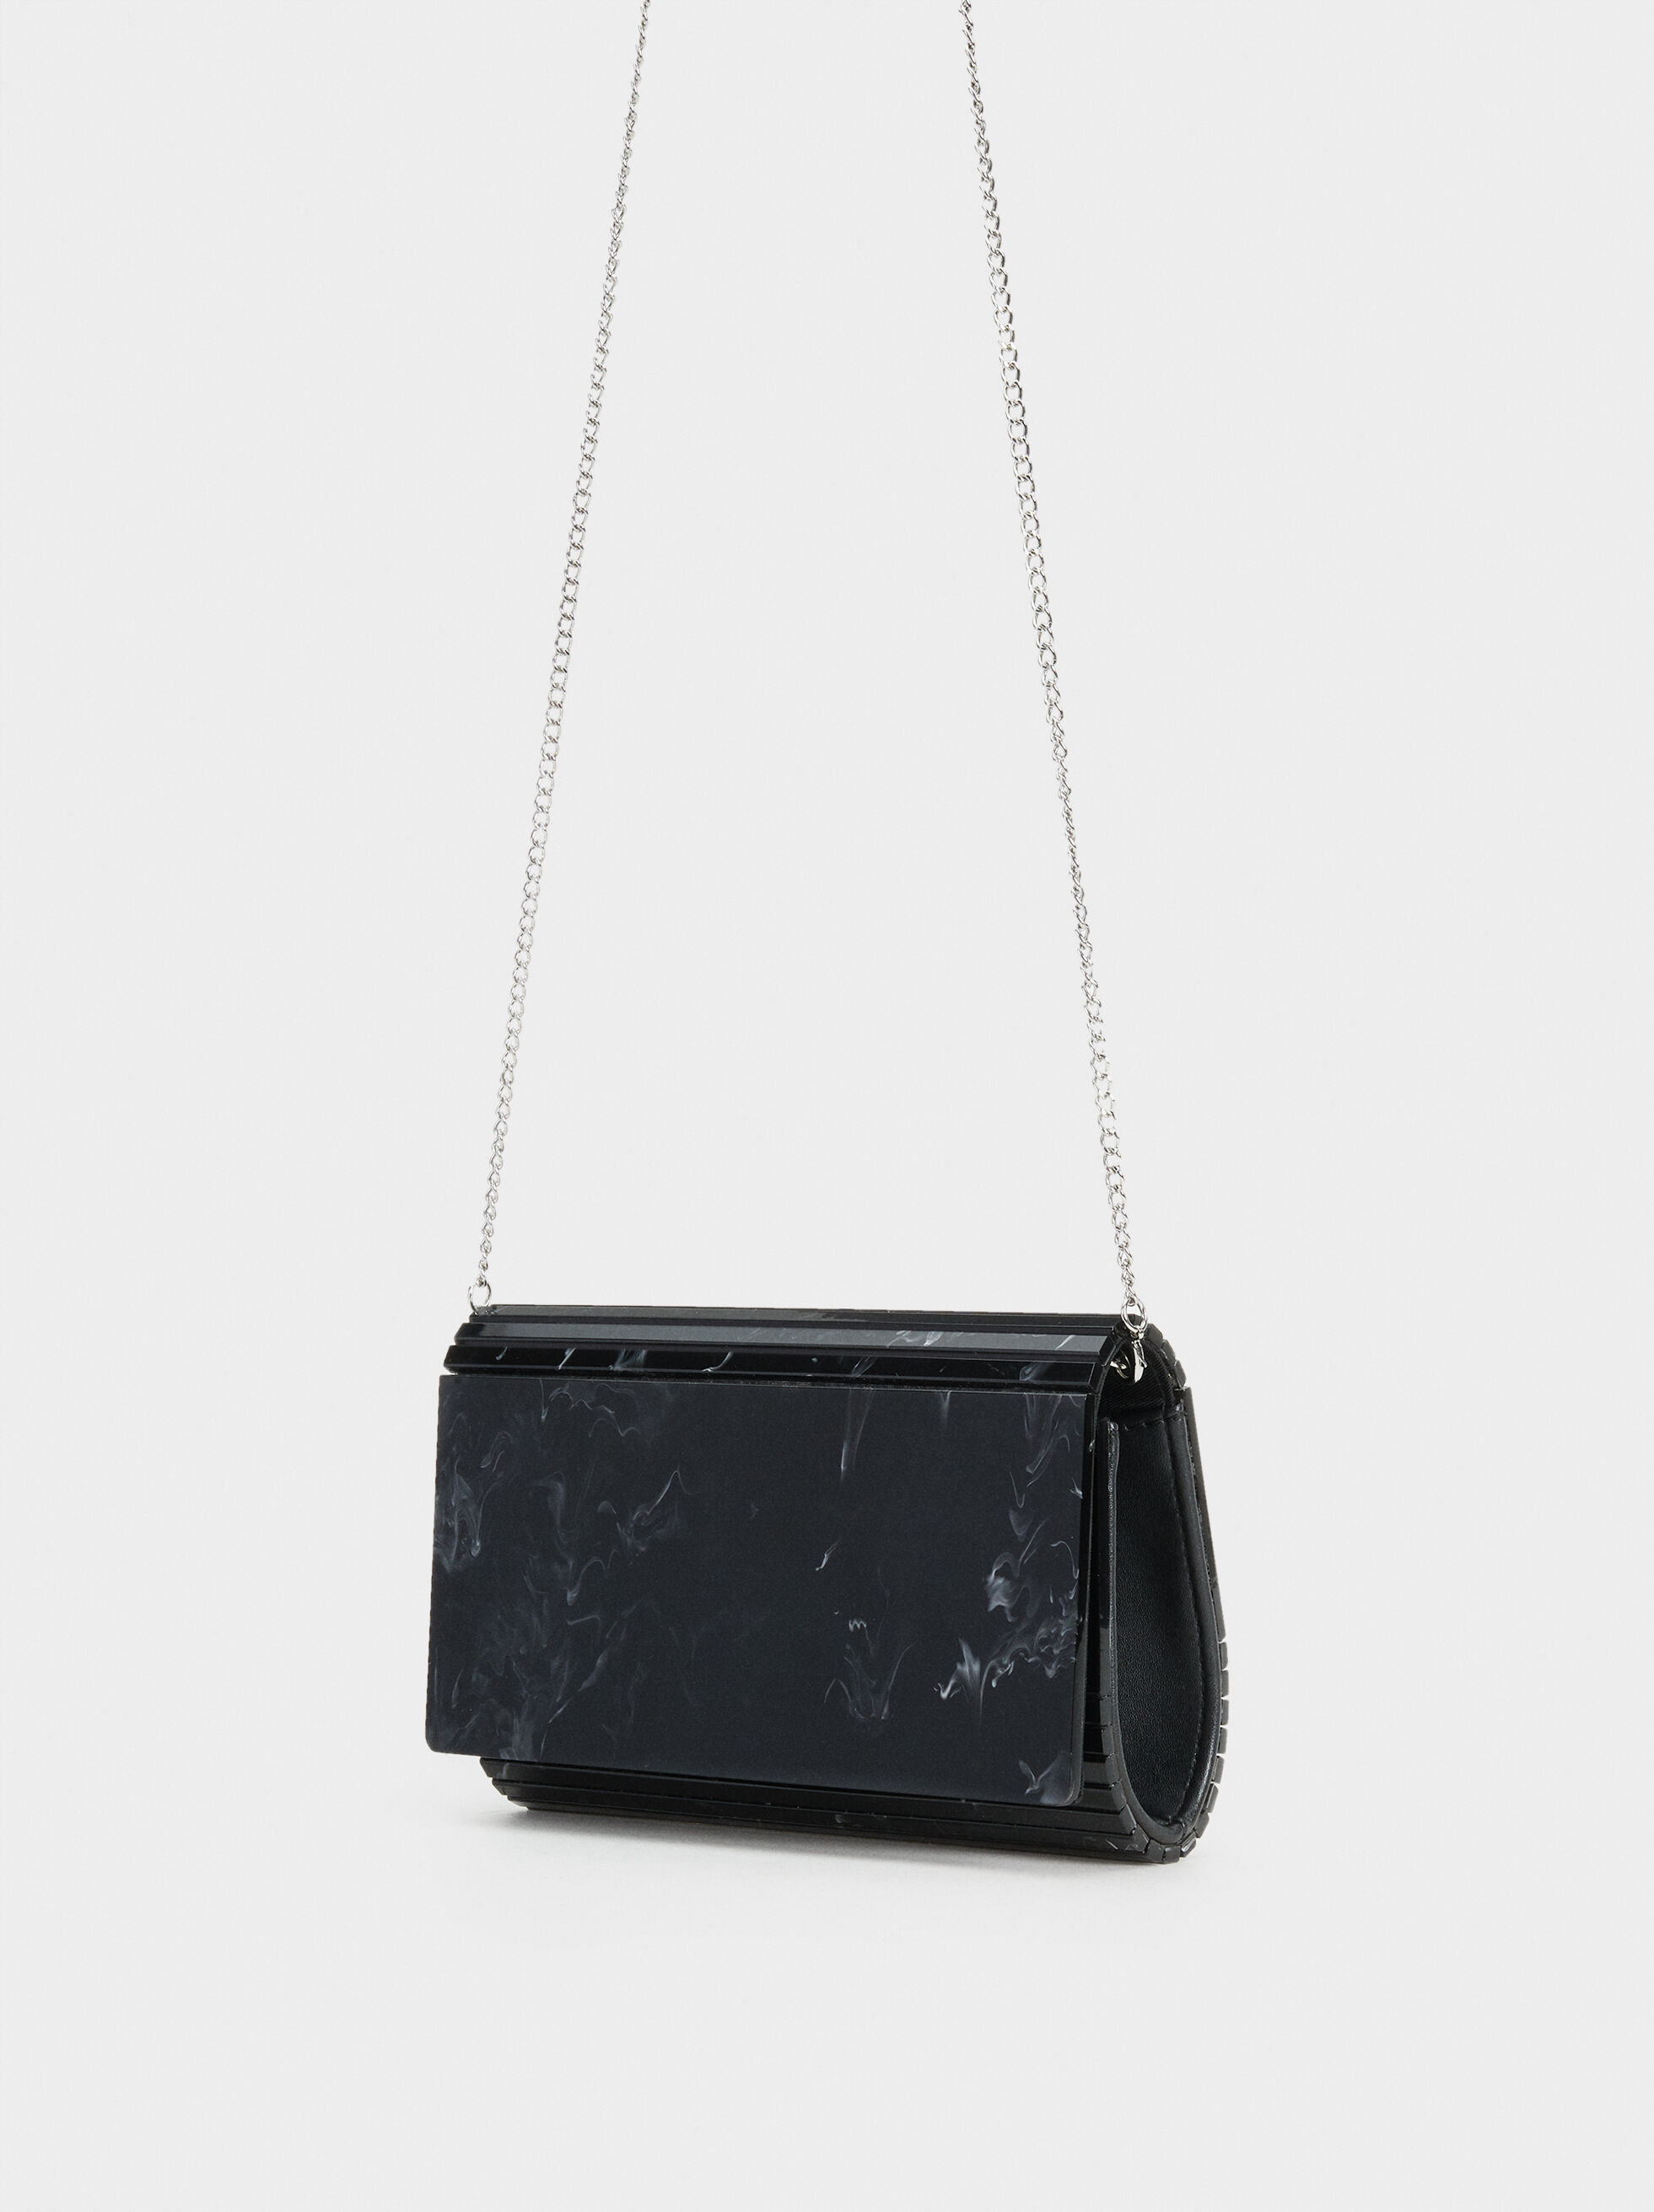 Clutch With Beaded Strap, Black, hi-res